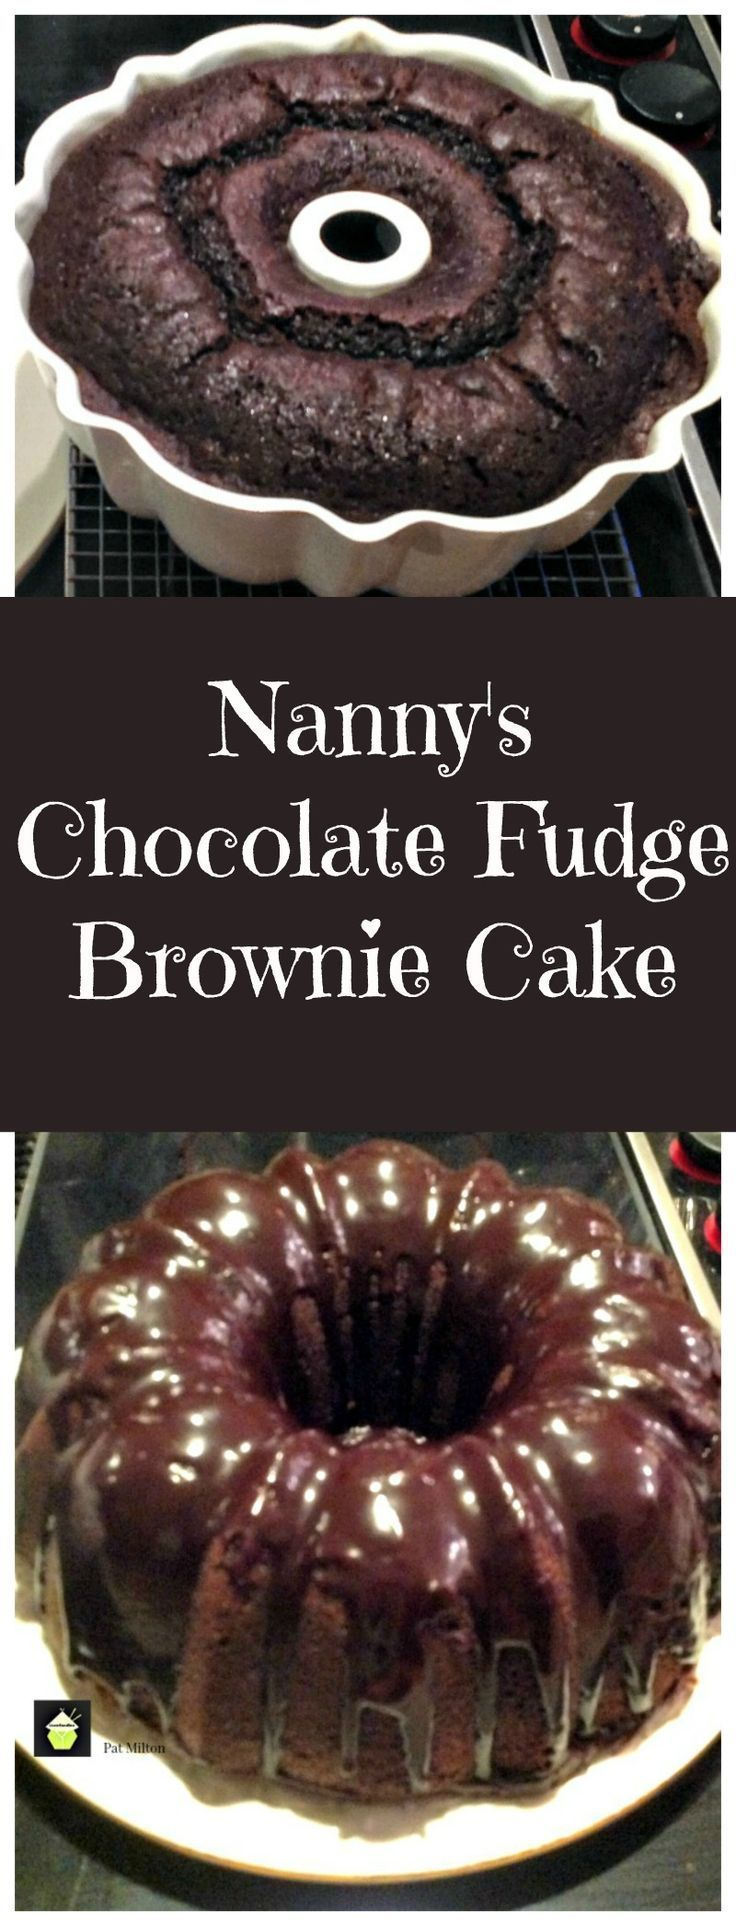 Nannys Chocolate Fudge Brownie Cake is a keeper recipe! Easy to make and perfect for chocolate lovers.This is also freezer friendly if you wanted to make in to portions or make ahead for a party!